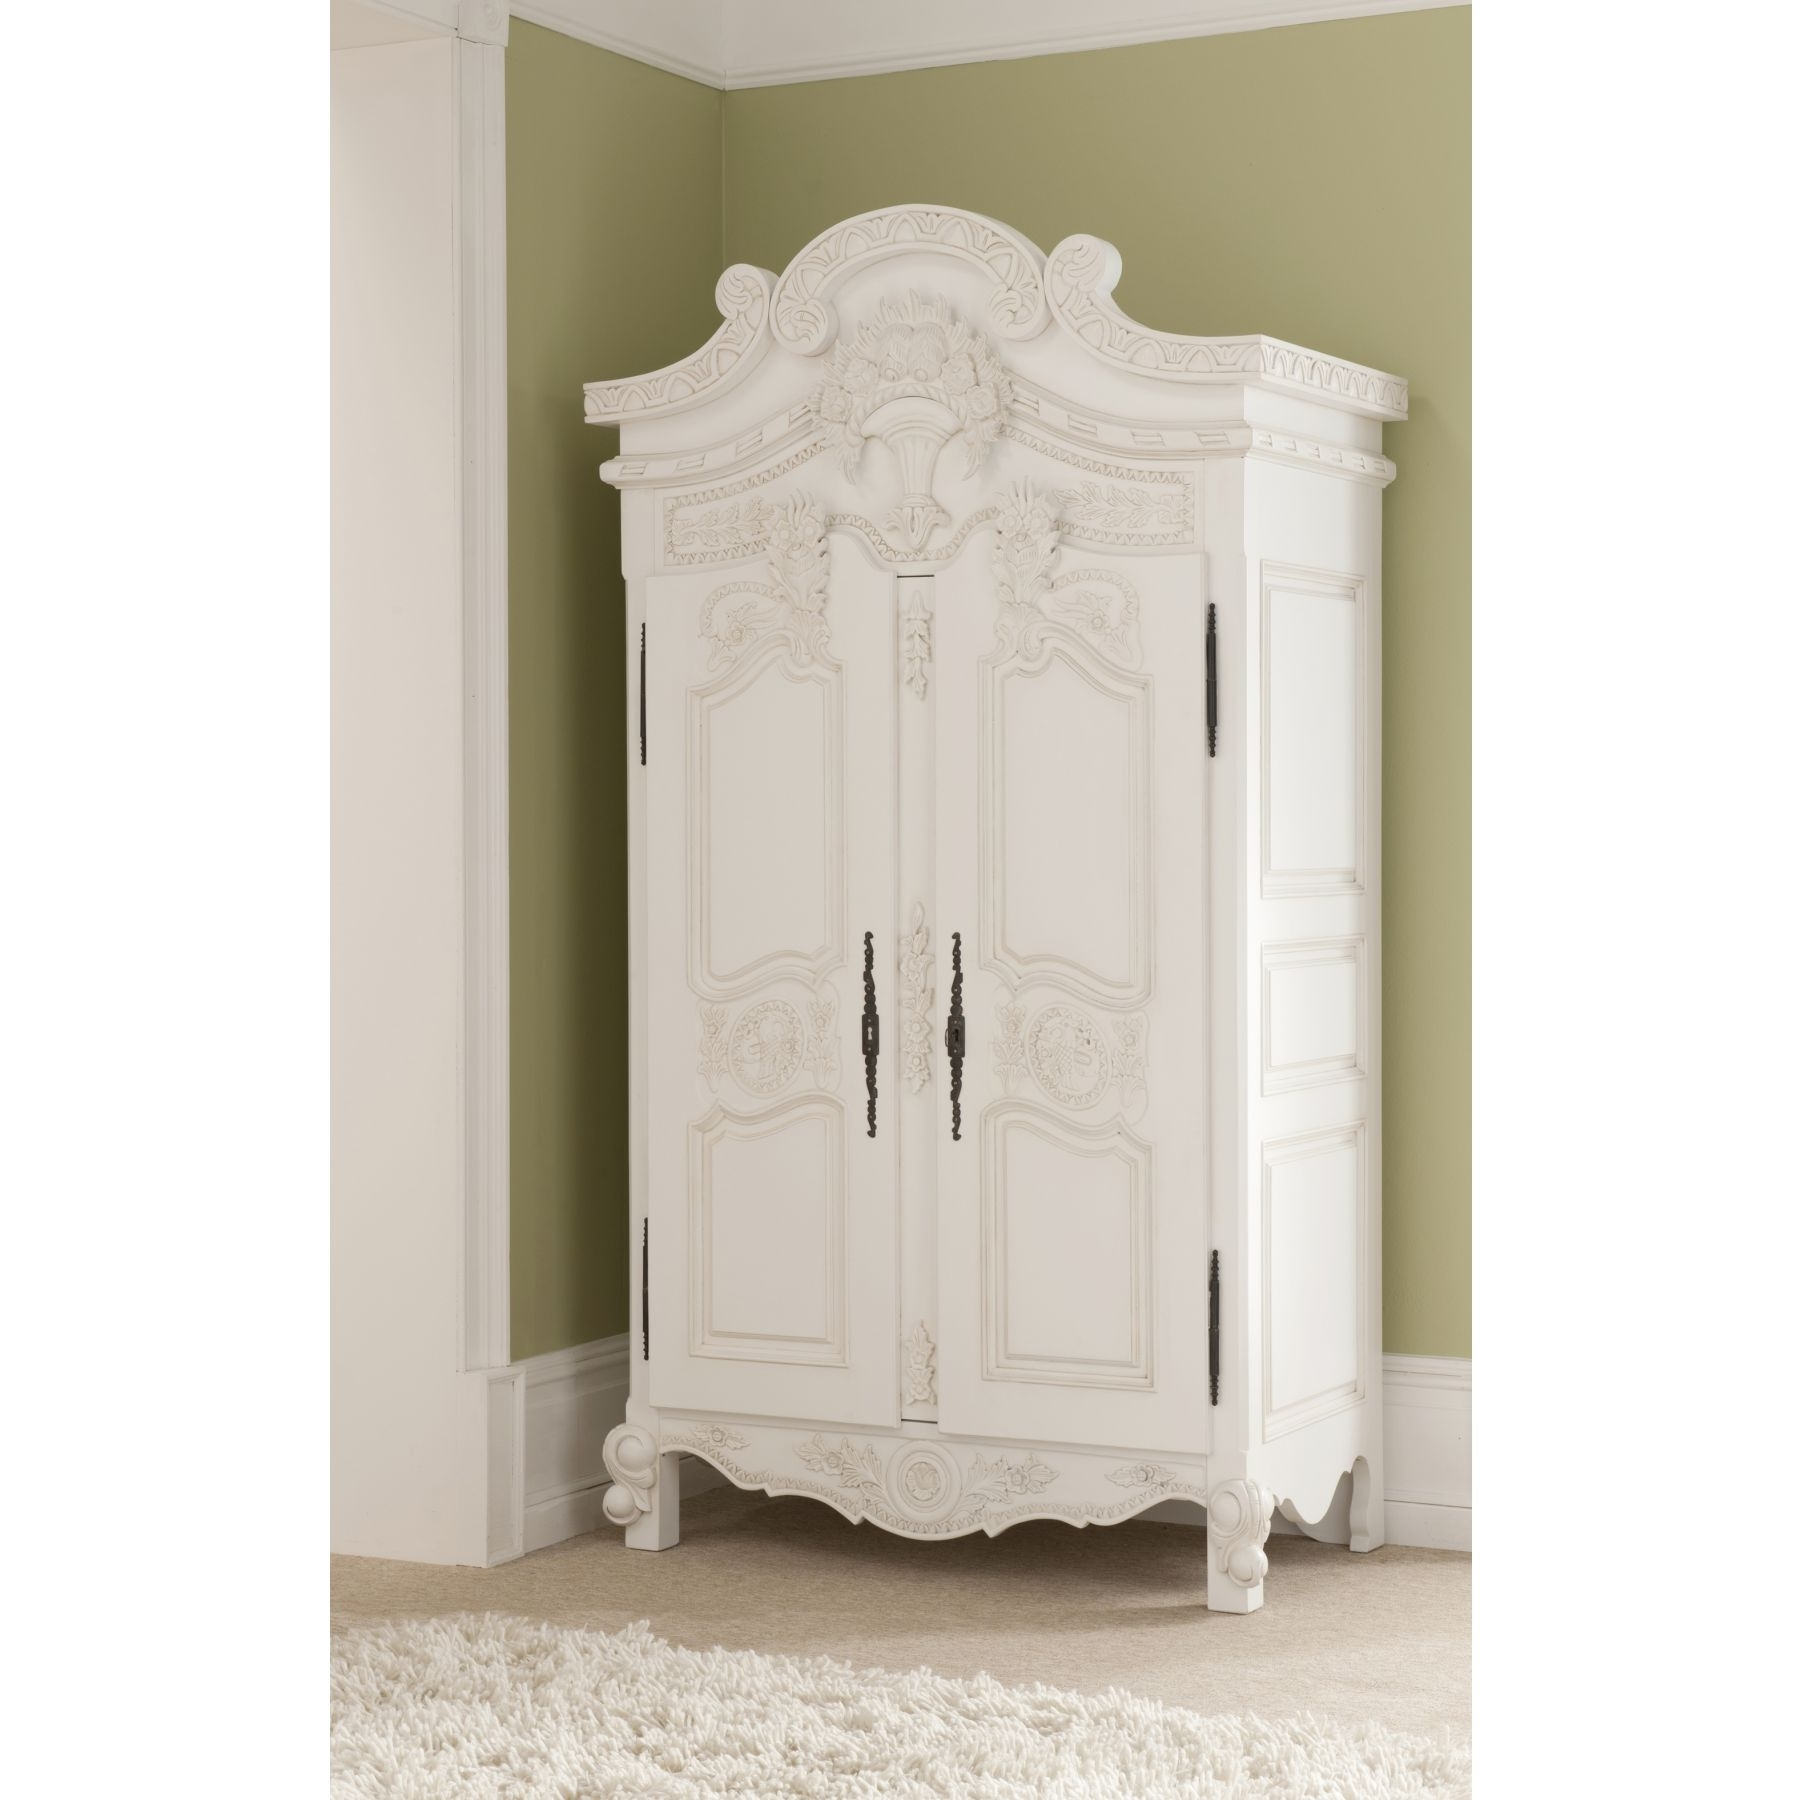 Antique White Wardrobes In Fashionable Rococo Antique French Wardrobe A Stunning Addition To Our Shabby (View 5 of 15)